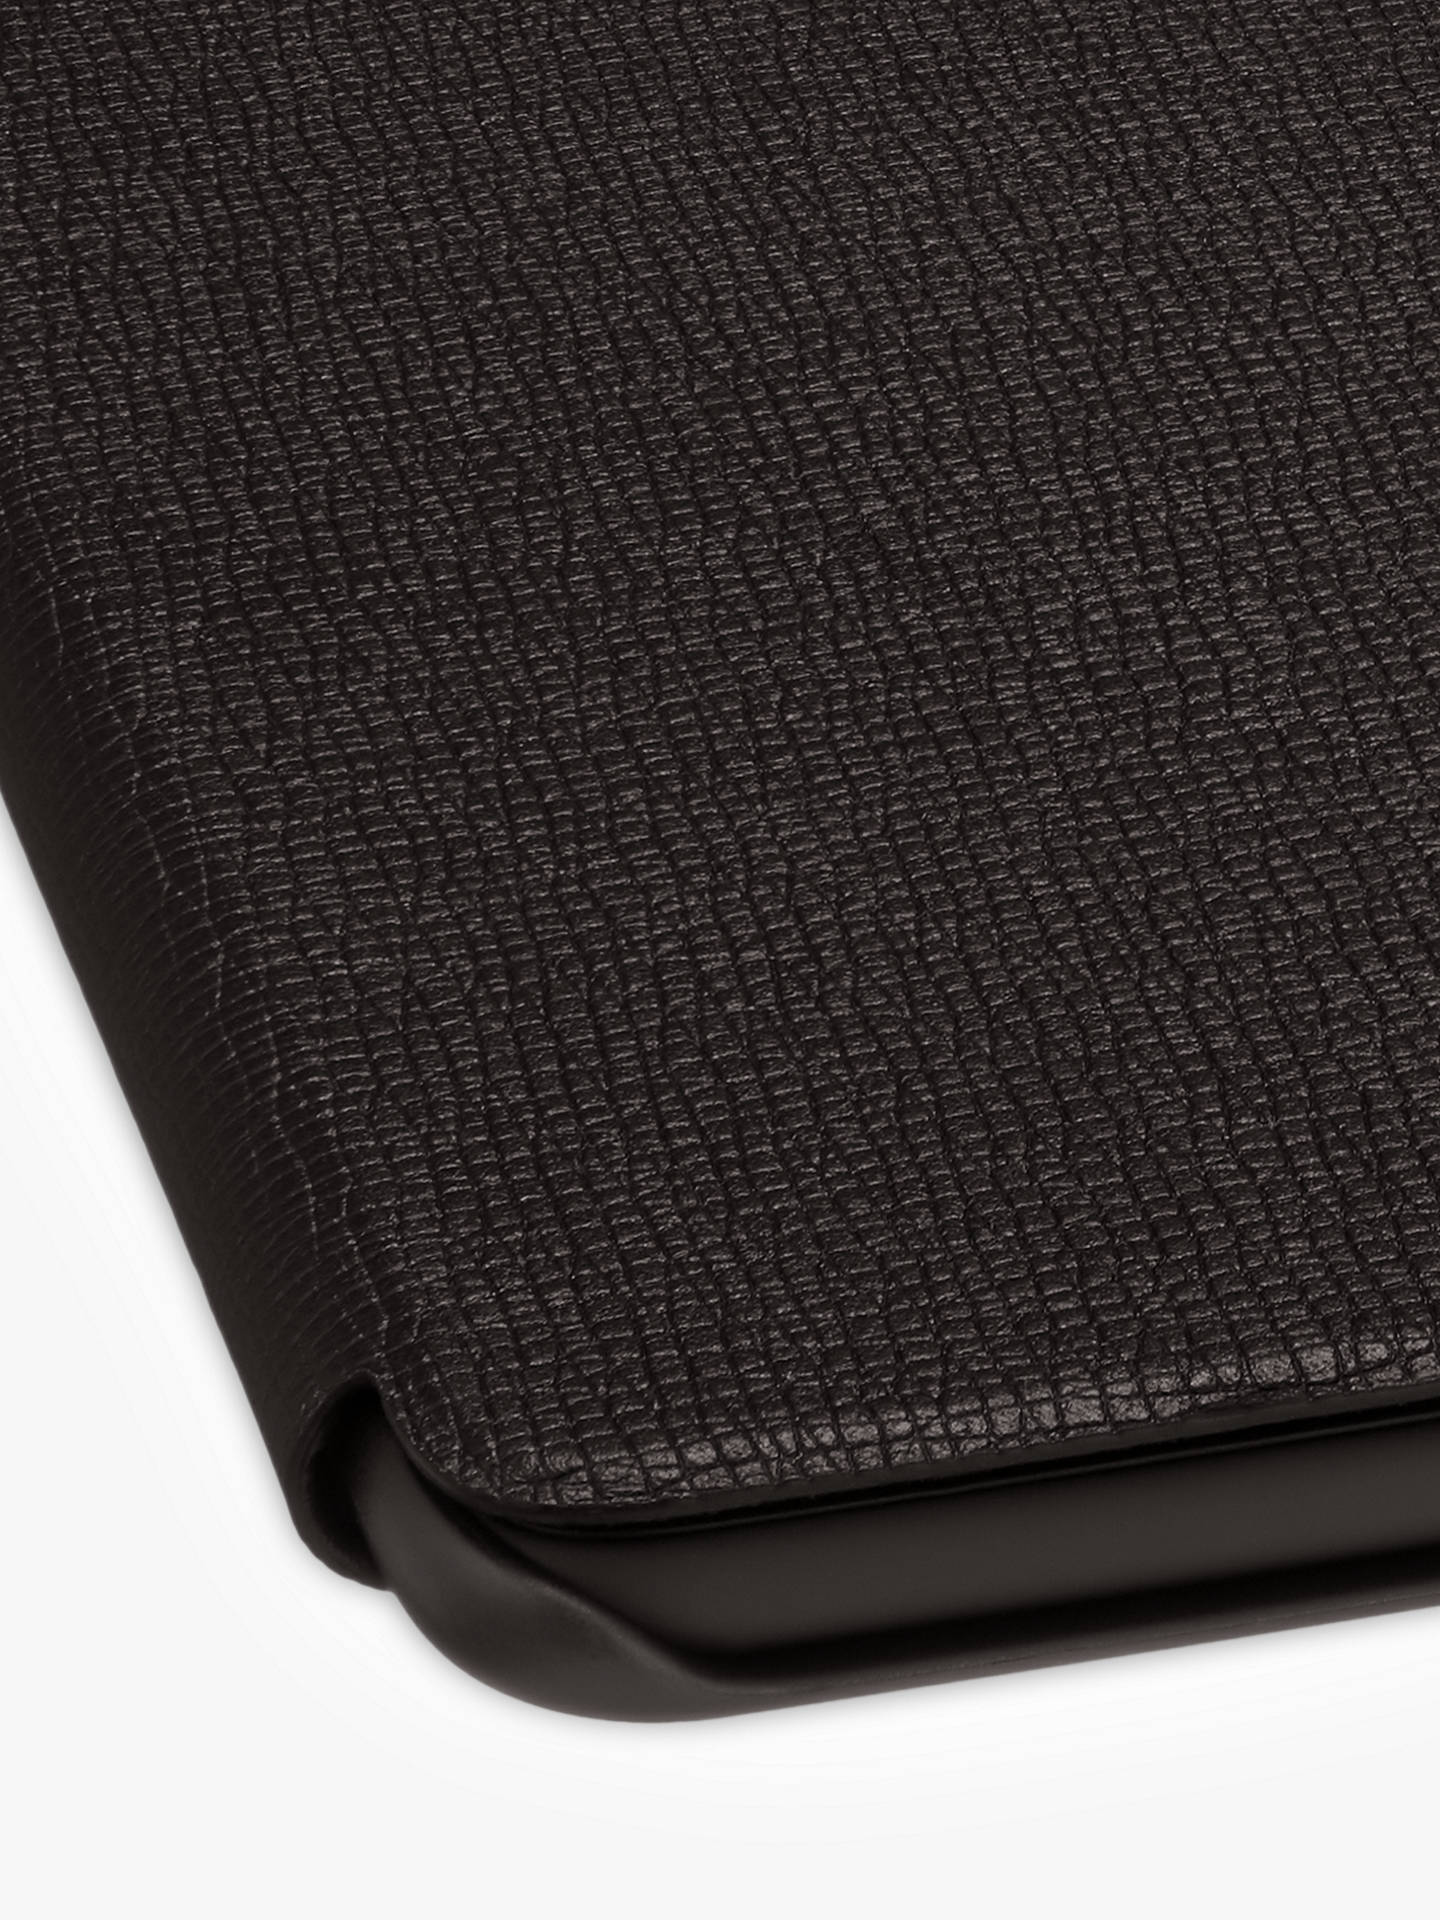 Amazon Leather Cover for Kindle Paperwhite (10th Generation), Black